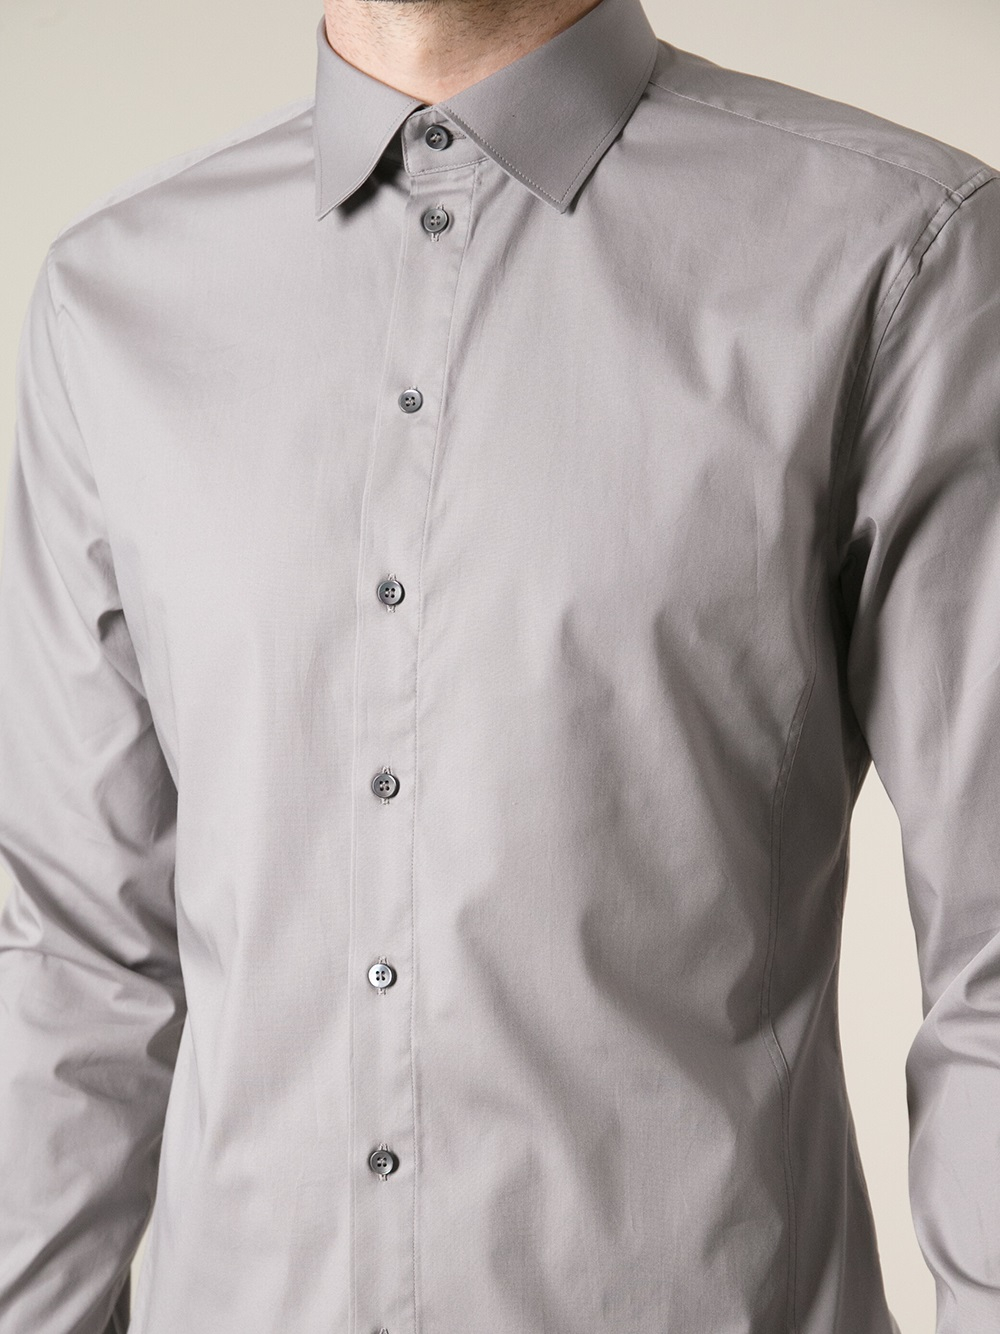 dolce gabbana button down shirt in gray for men lyst